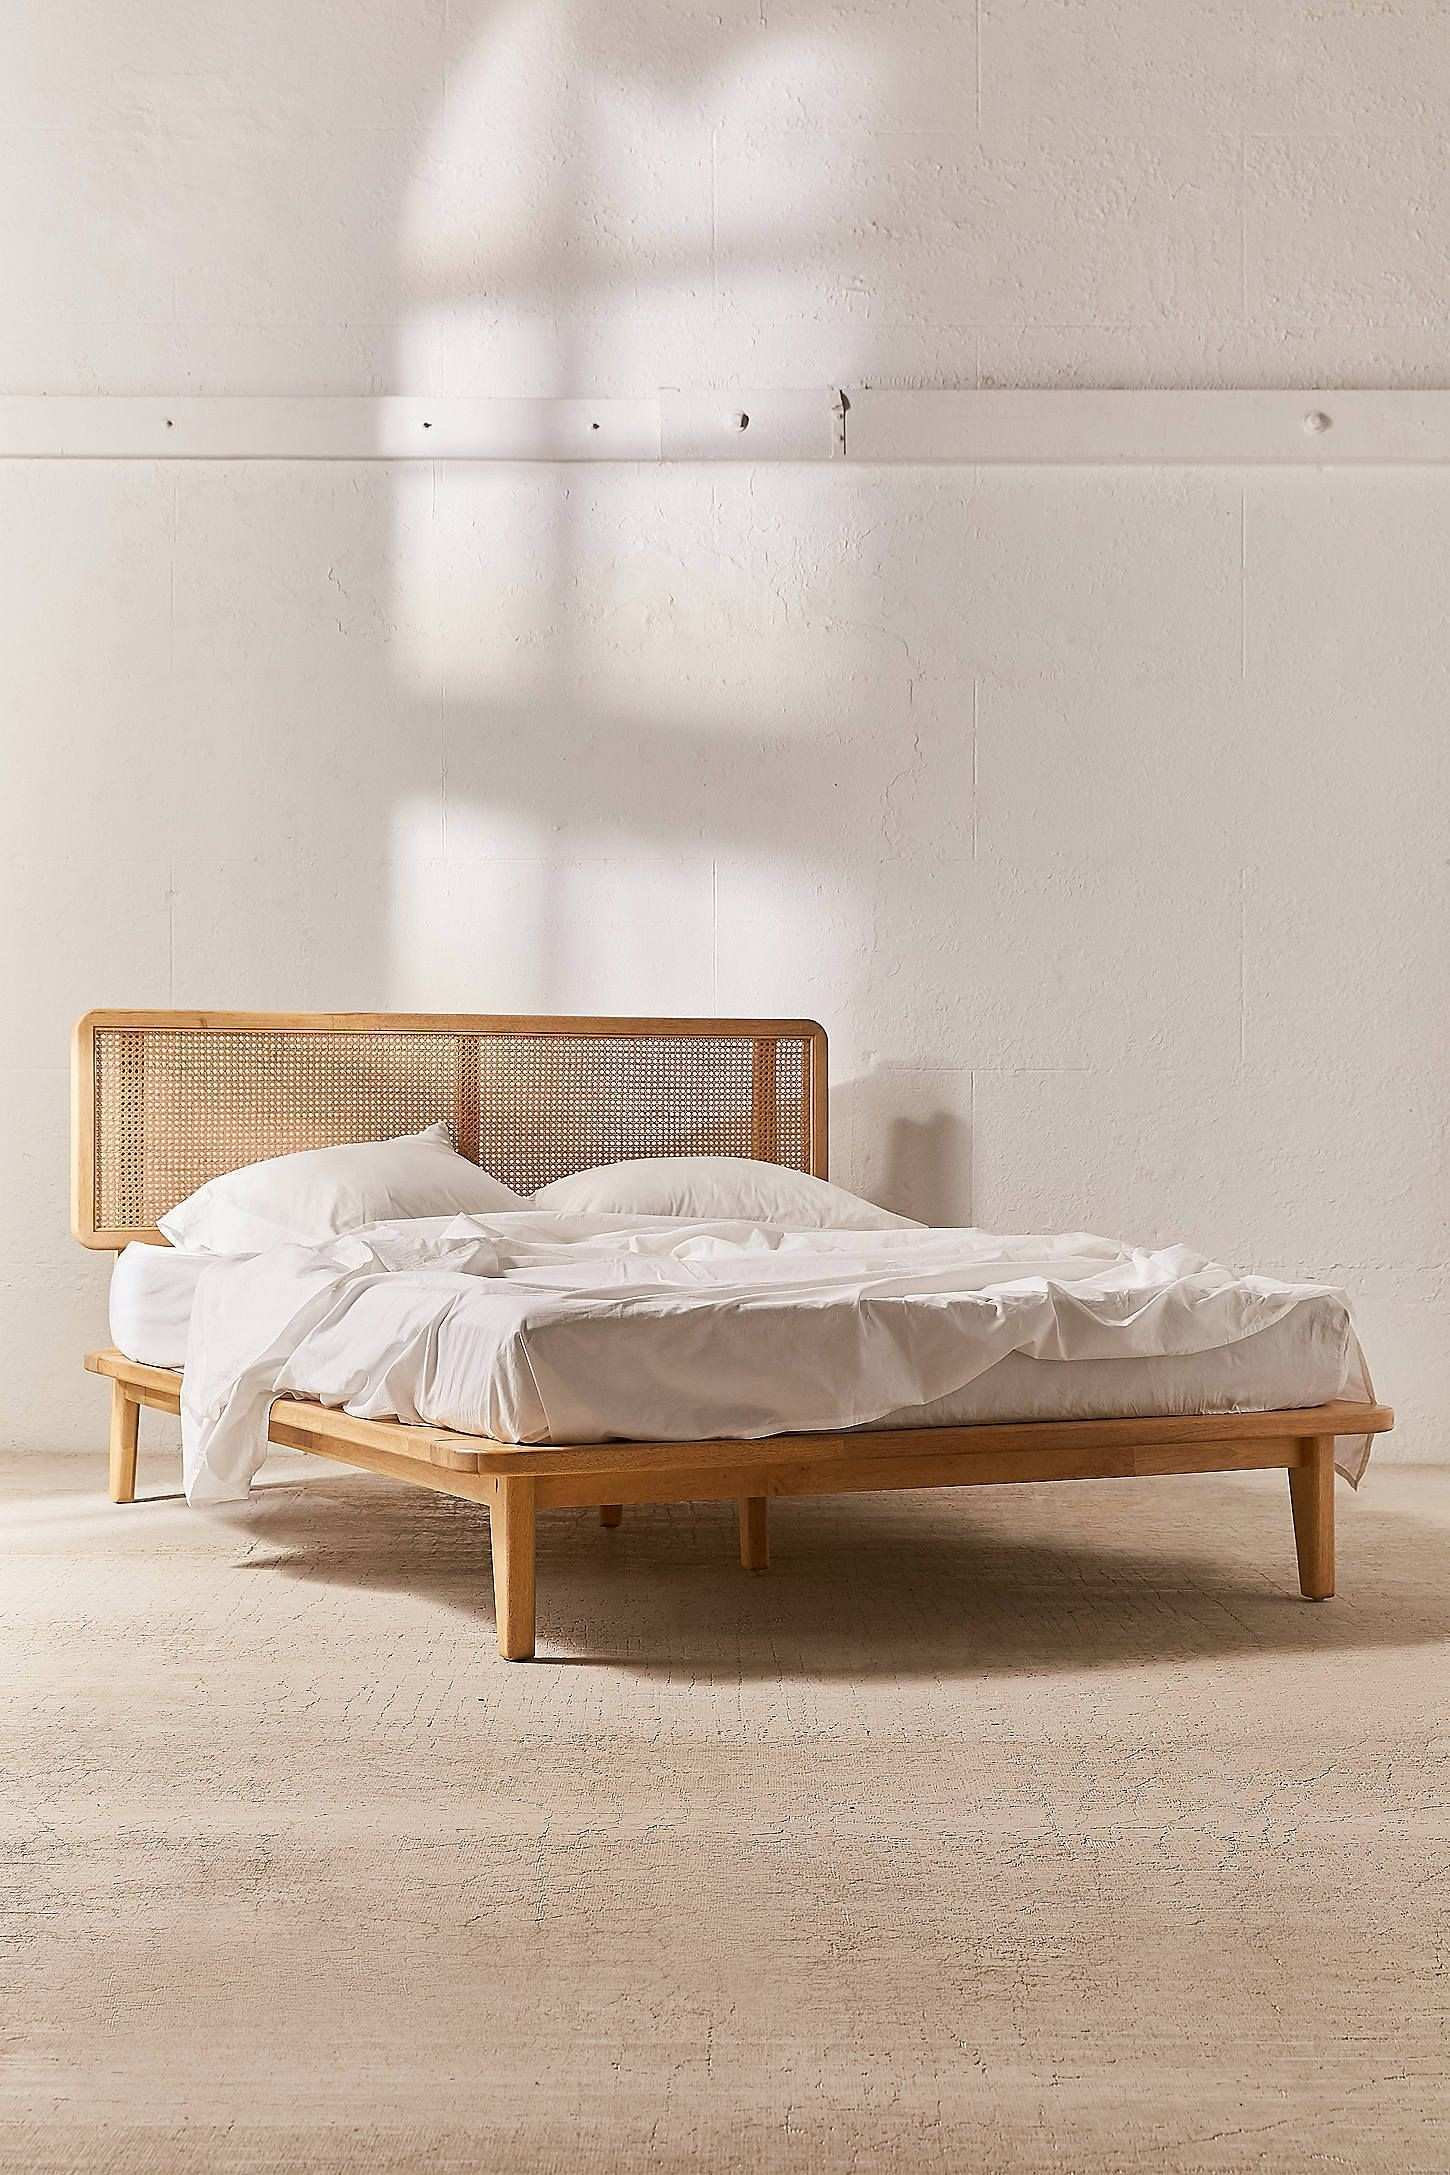 How to Buy A Bed Frame Luxury Springbox Betten 140 X 200 Meilleur